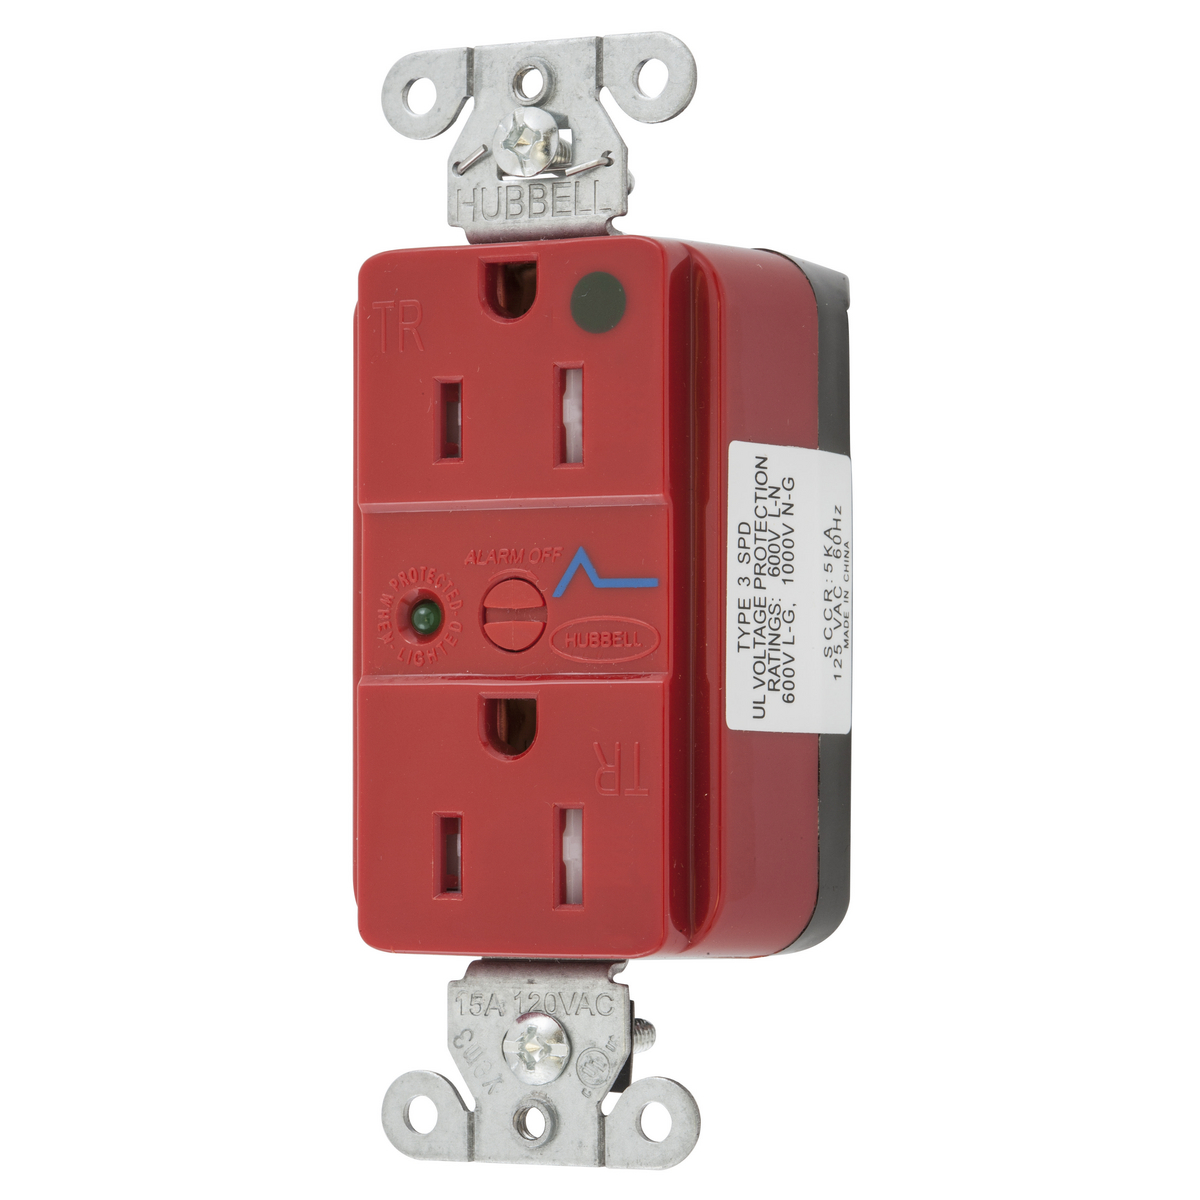 Snap8262rs Snapconnect Receptacles Straight Blade Devices Wiring 2 Gang Recepitacle Youtube